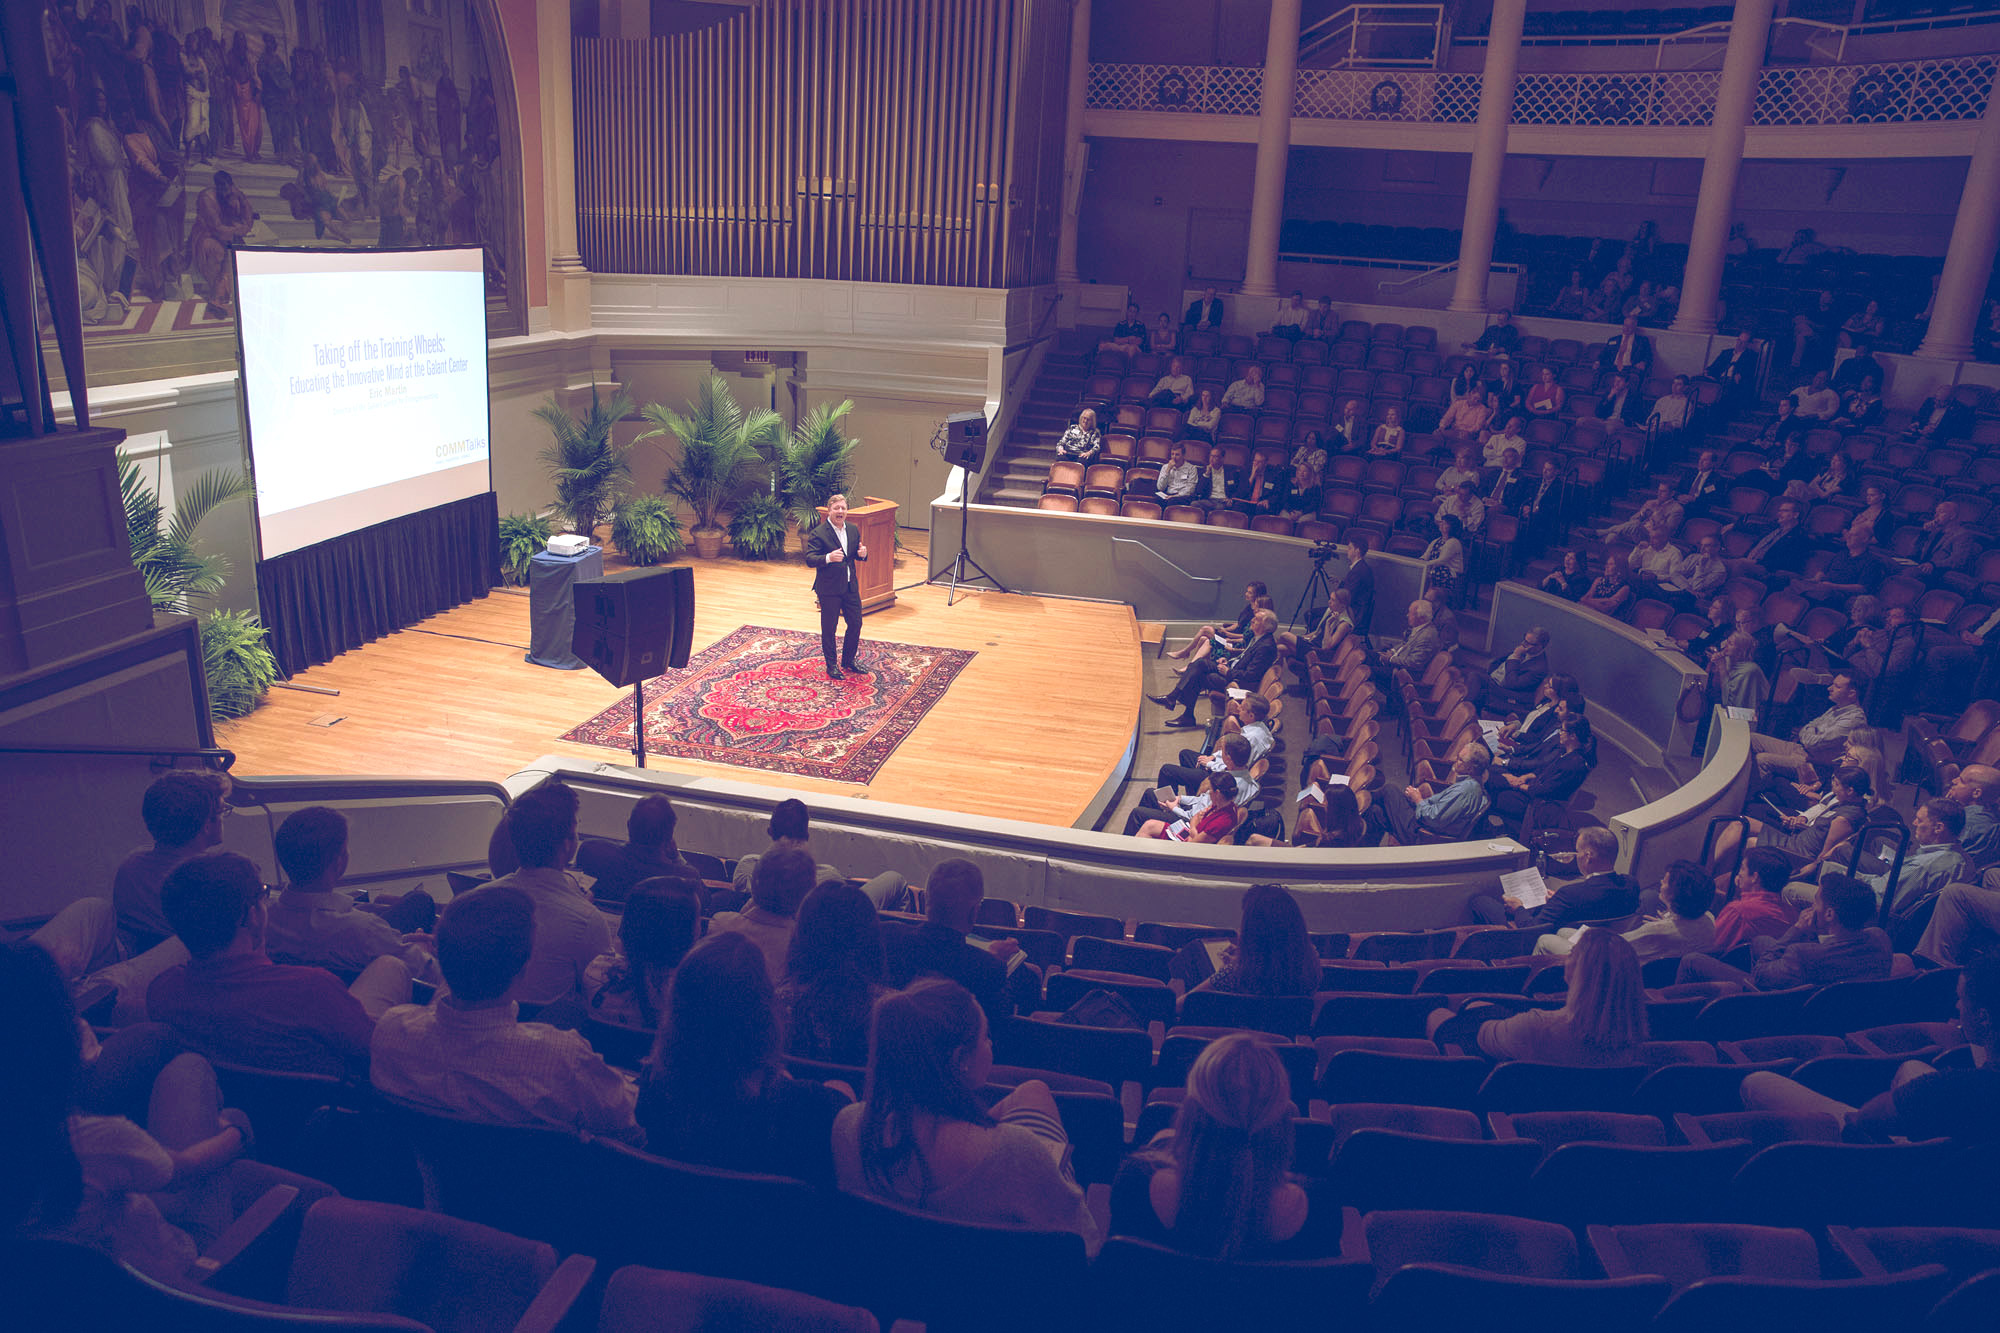 Ten faculty members from the McIntire School of Commerce took the stage Friday for TED-style talks sharing their research on a wide range of issues.